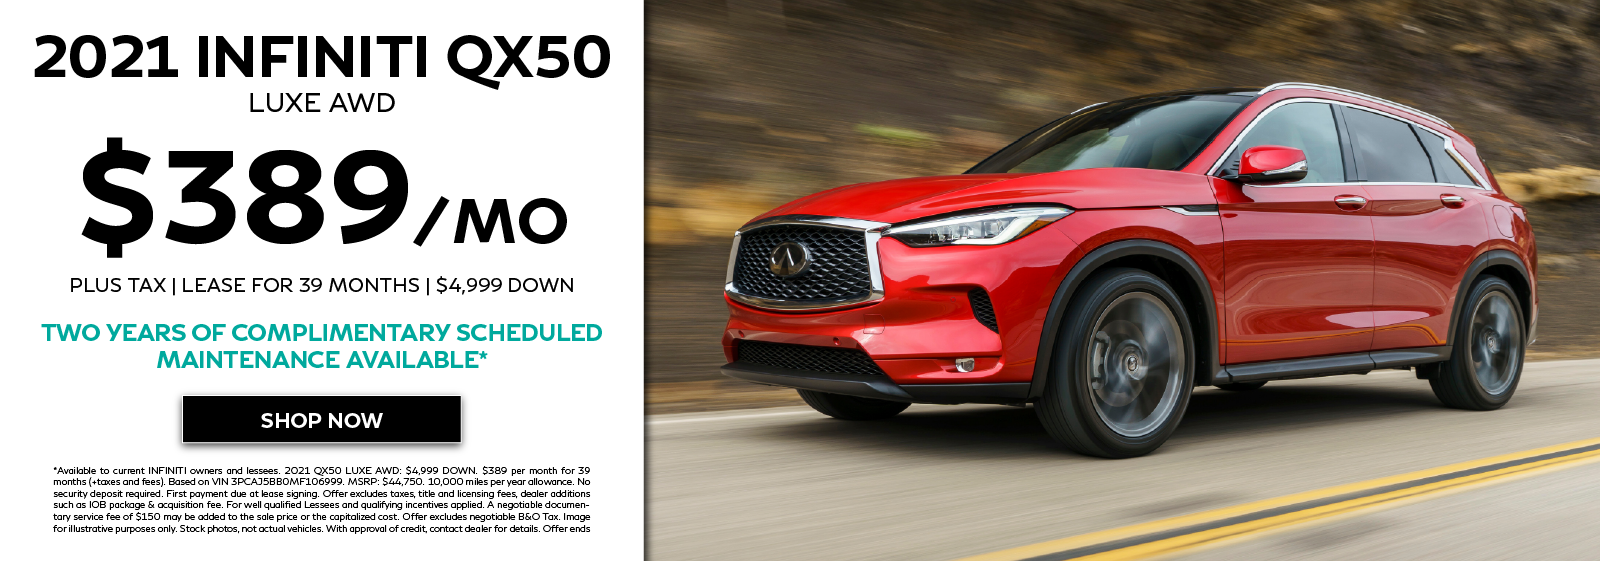 Well-qualified lessees can lease a new 2021 INFINITI QX50 LUXE AWD for $349 per month for 39 months plus get two years complimentary scheduled maintenance. Click to view inventory.